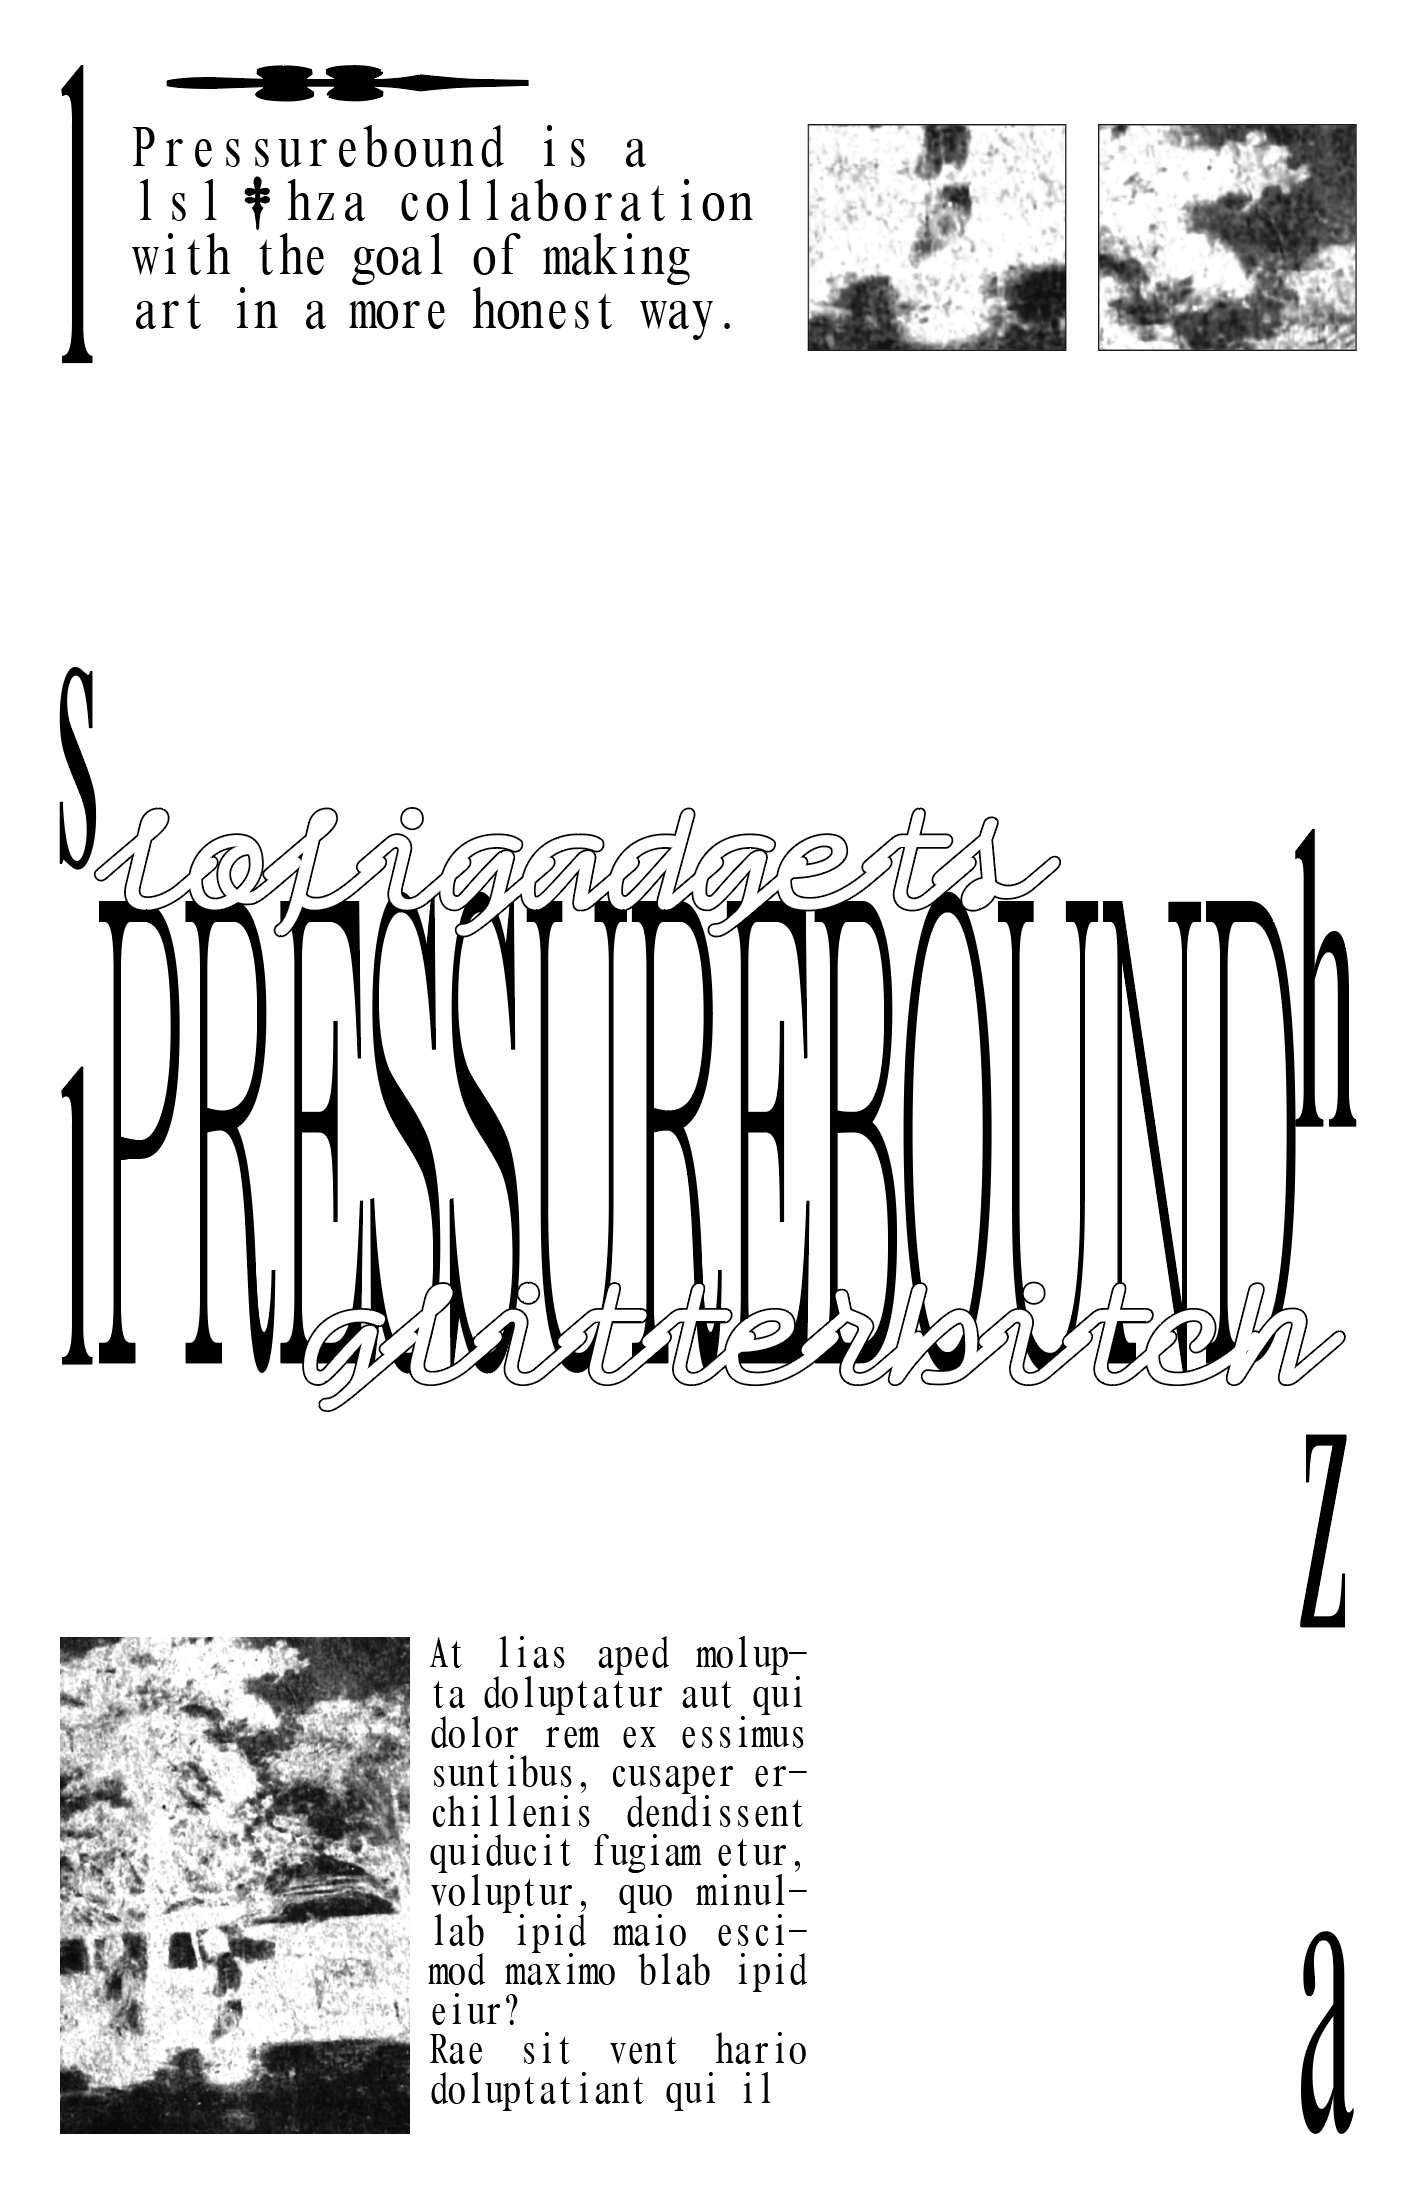 Screenshot of a draft of a poster, in black text/images on a white background. 'PRESSUREBOUND' stretched tall and narrow, positioned in the center of the composition. To its top left and bottom right are 'lsl' and 'hza' respectively, similarly stretched thin and long. At its top left and bottom right, 'PRESSUREBOUND' is intertwined with the words 'lofigadgets' and 'glitterbitch', both in a bubbly font. To the top and bottom of the composition are crops of an unidentifiable image and filler text, of which the top left paragraph reads 'Pressurebound is a lsl & hza collaboration with the goal of making art in a more honest way'. (The & is replaced with a dagger symbol.)